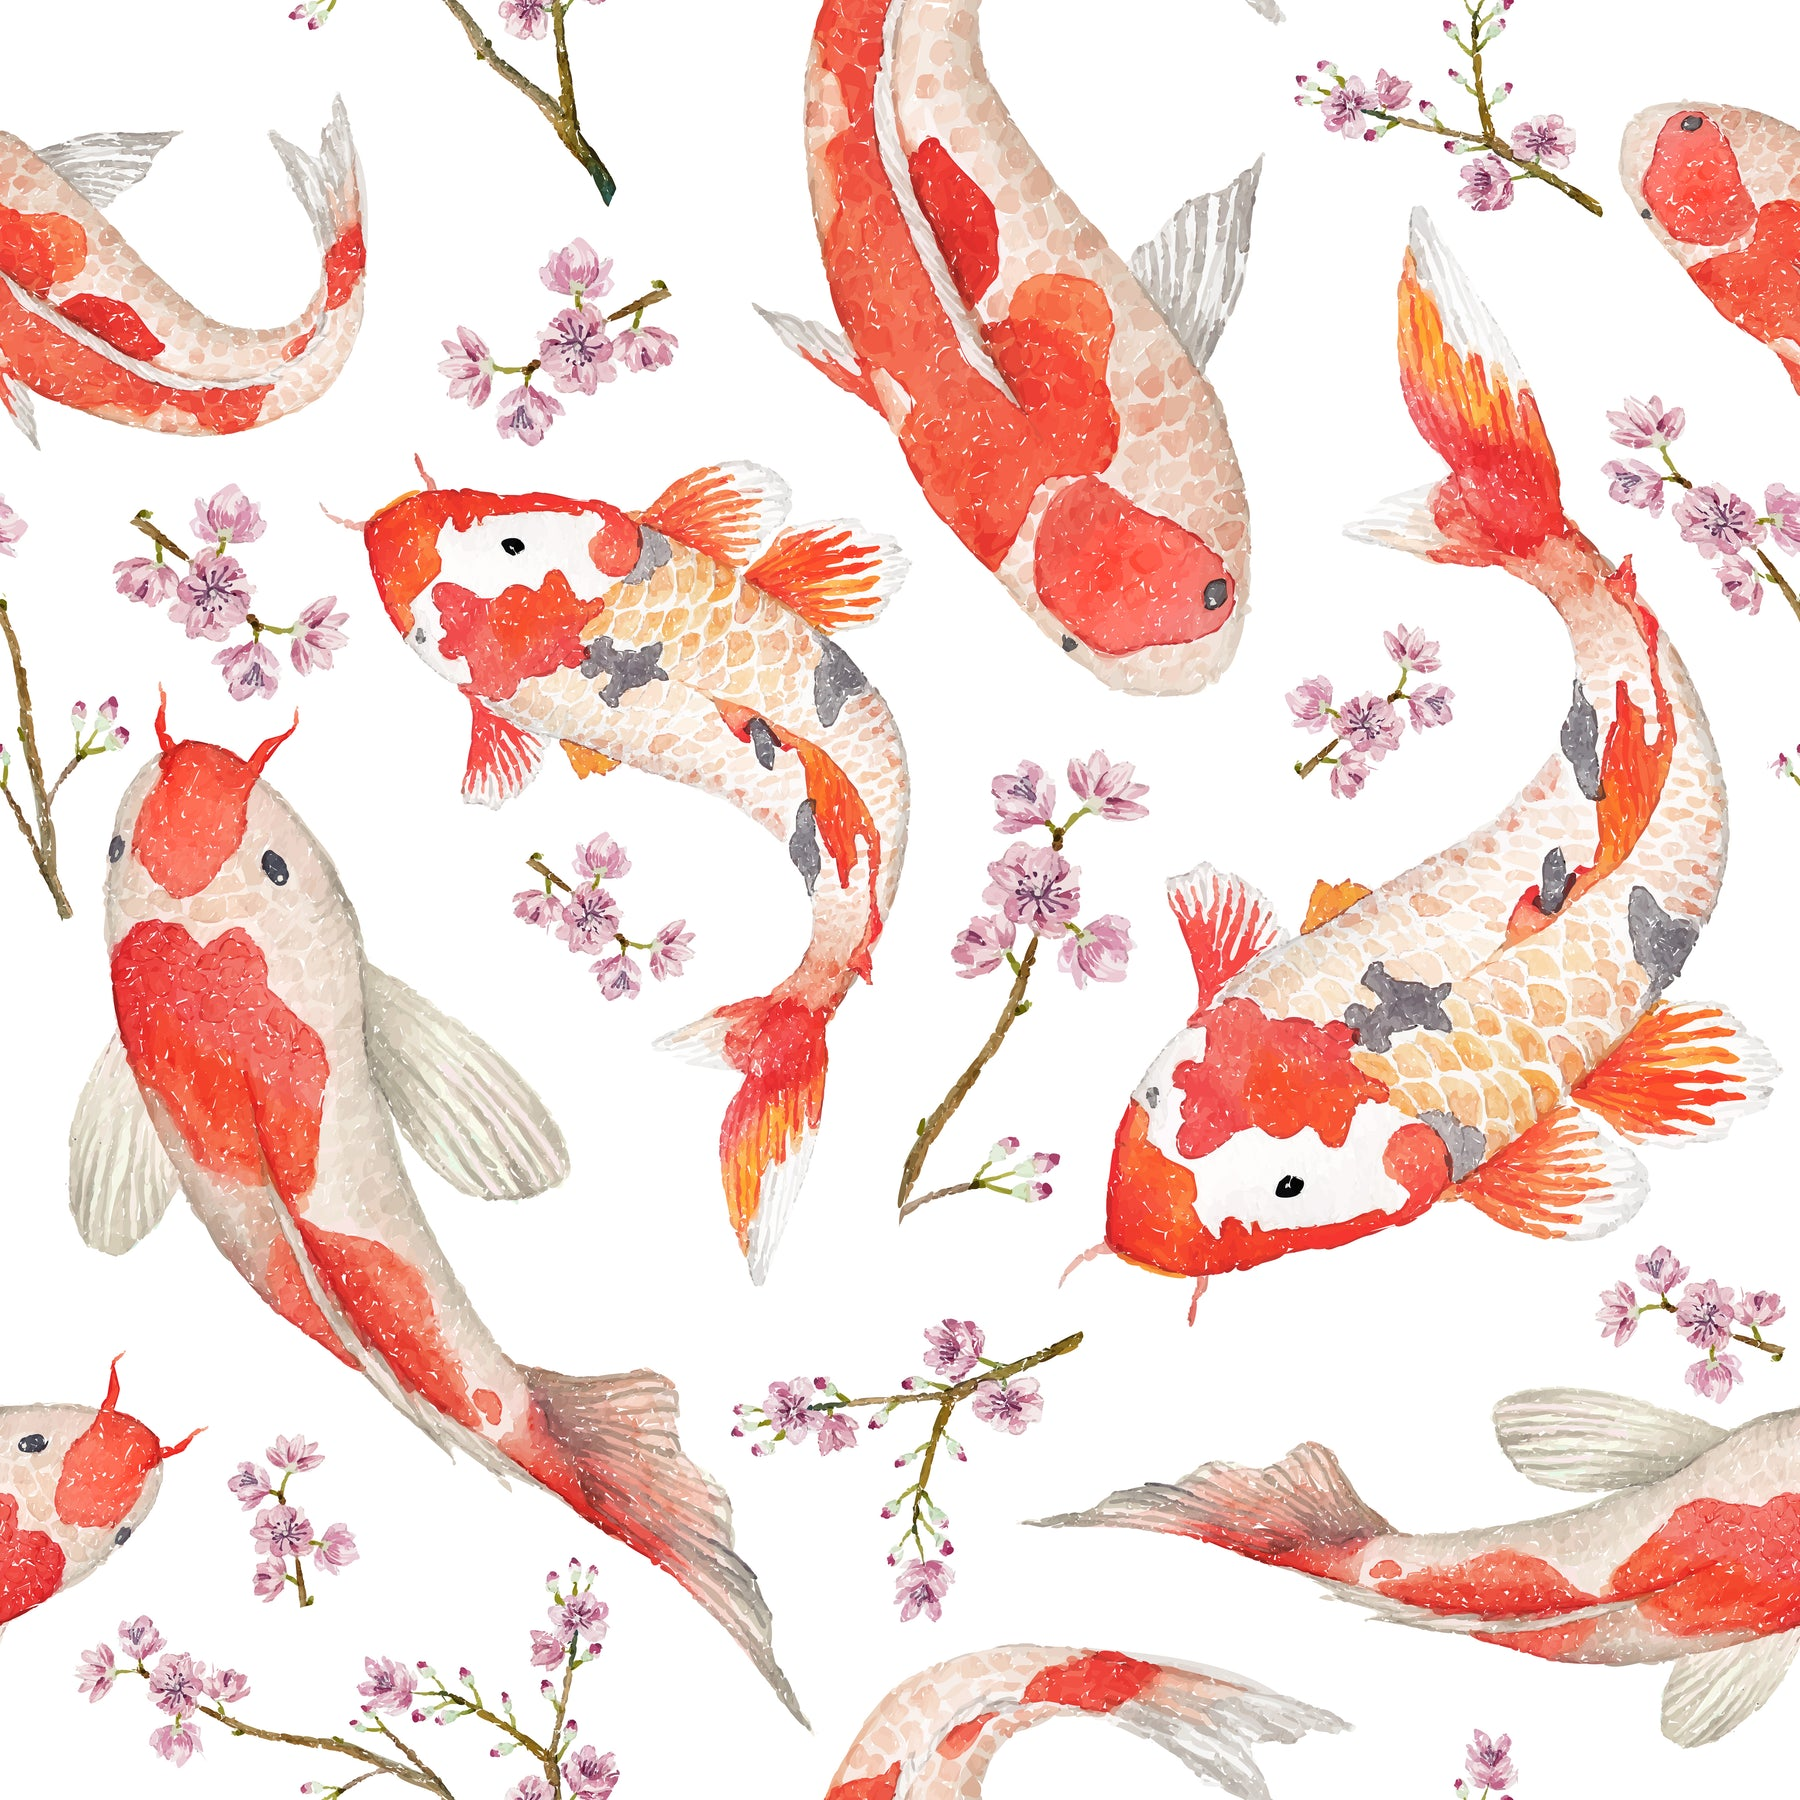 Asian Style Japanese Red Fish Koi Carp Multicolored Wallpaper Reusable Wallstickers4you